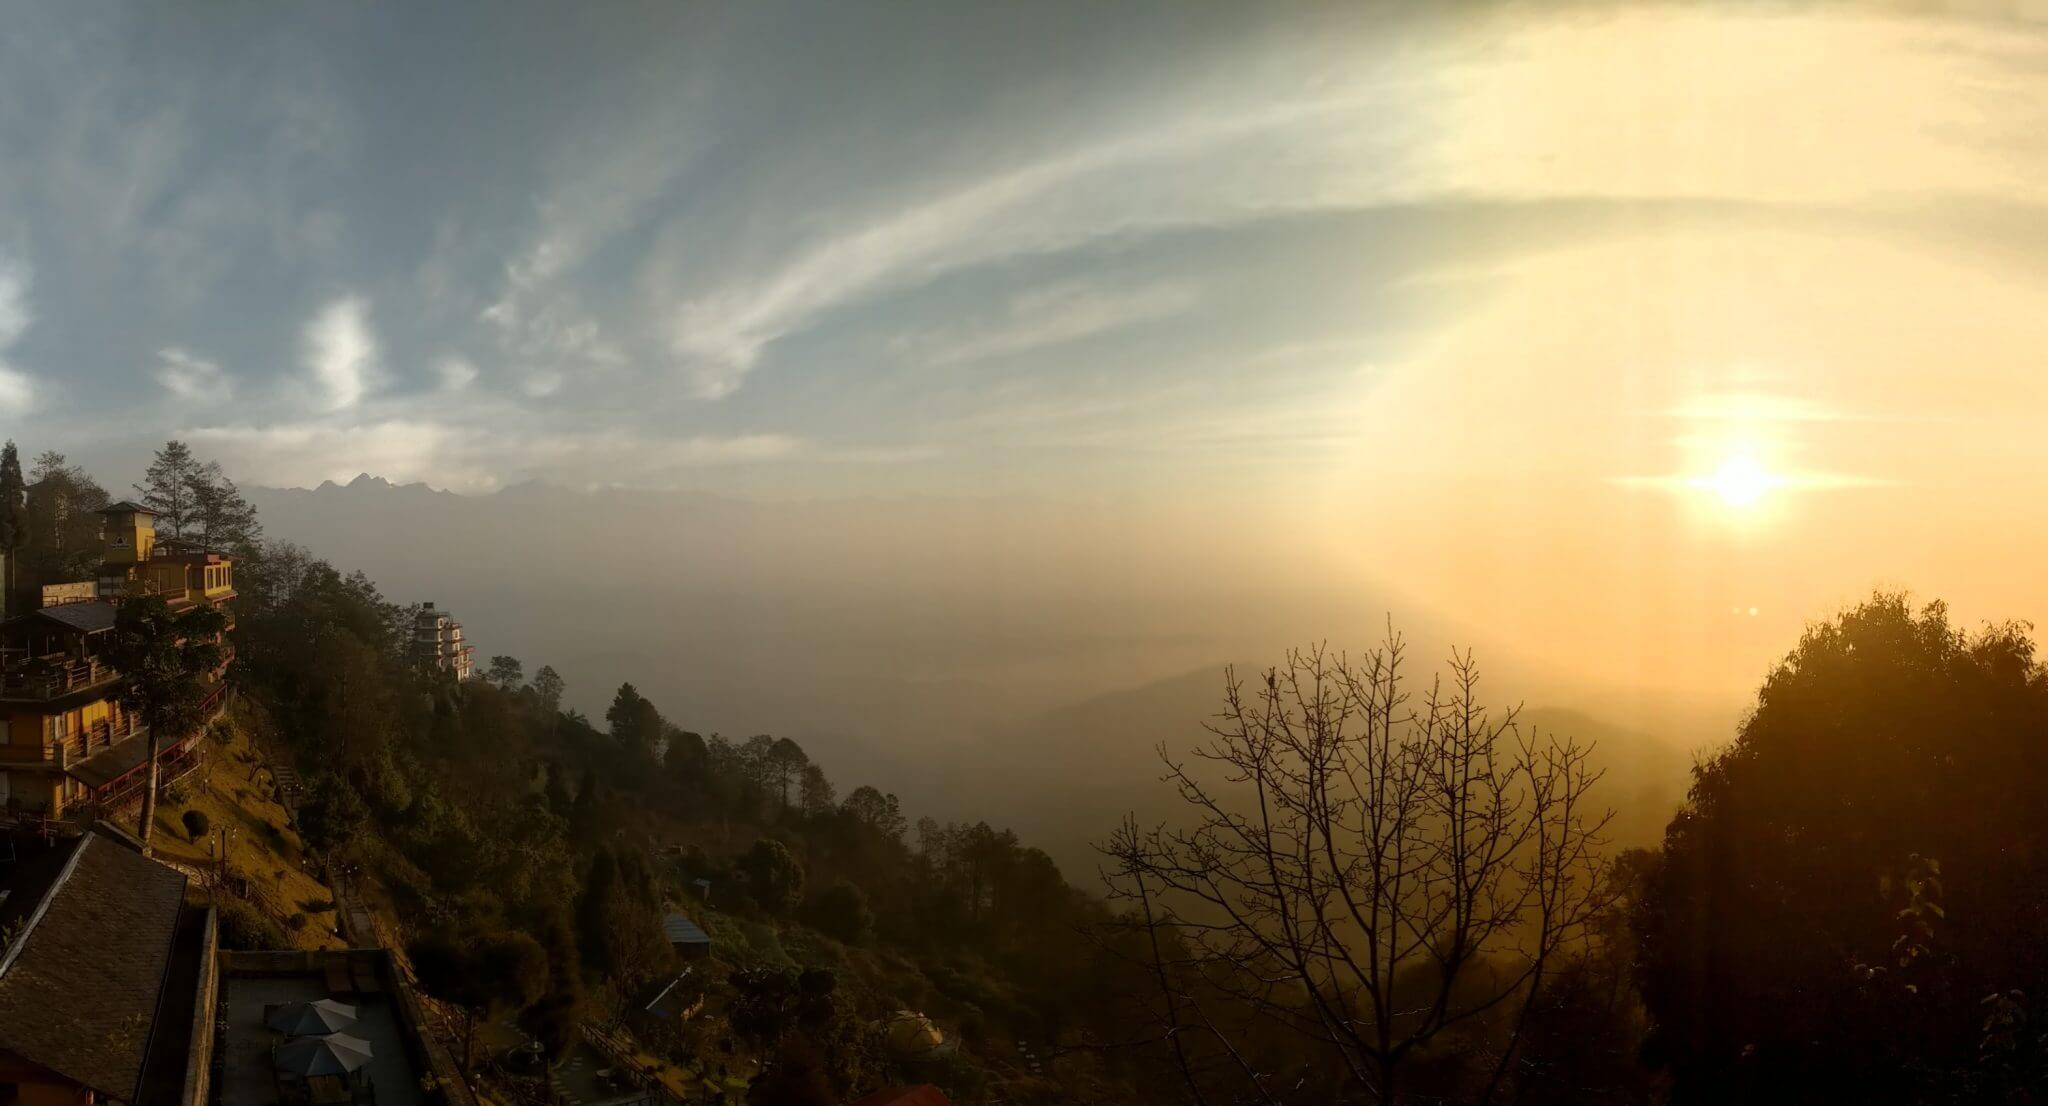 Sunrise in Nagarkot